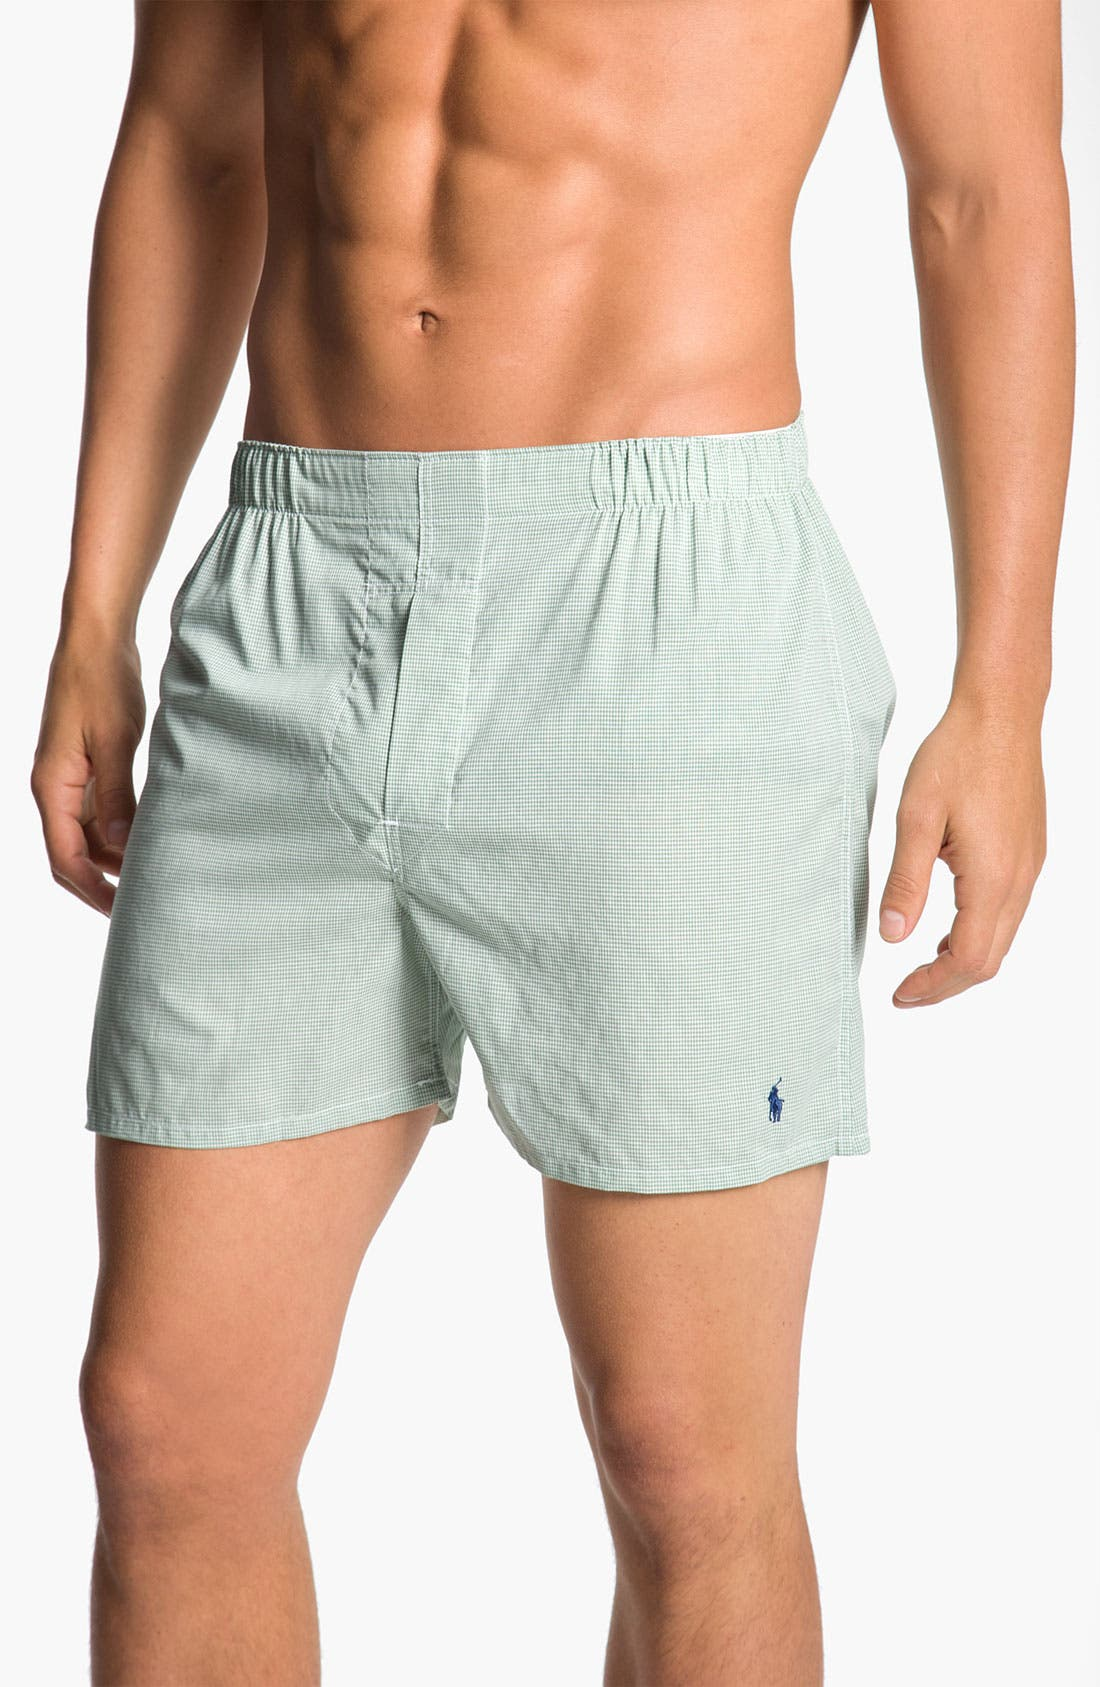 Alternate Image 4  - Polo Ralph Lauren Woven Boxers (Assorted 3-Pack)